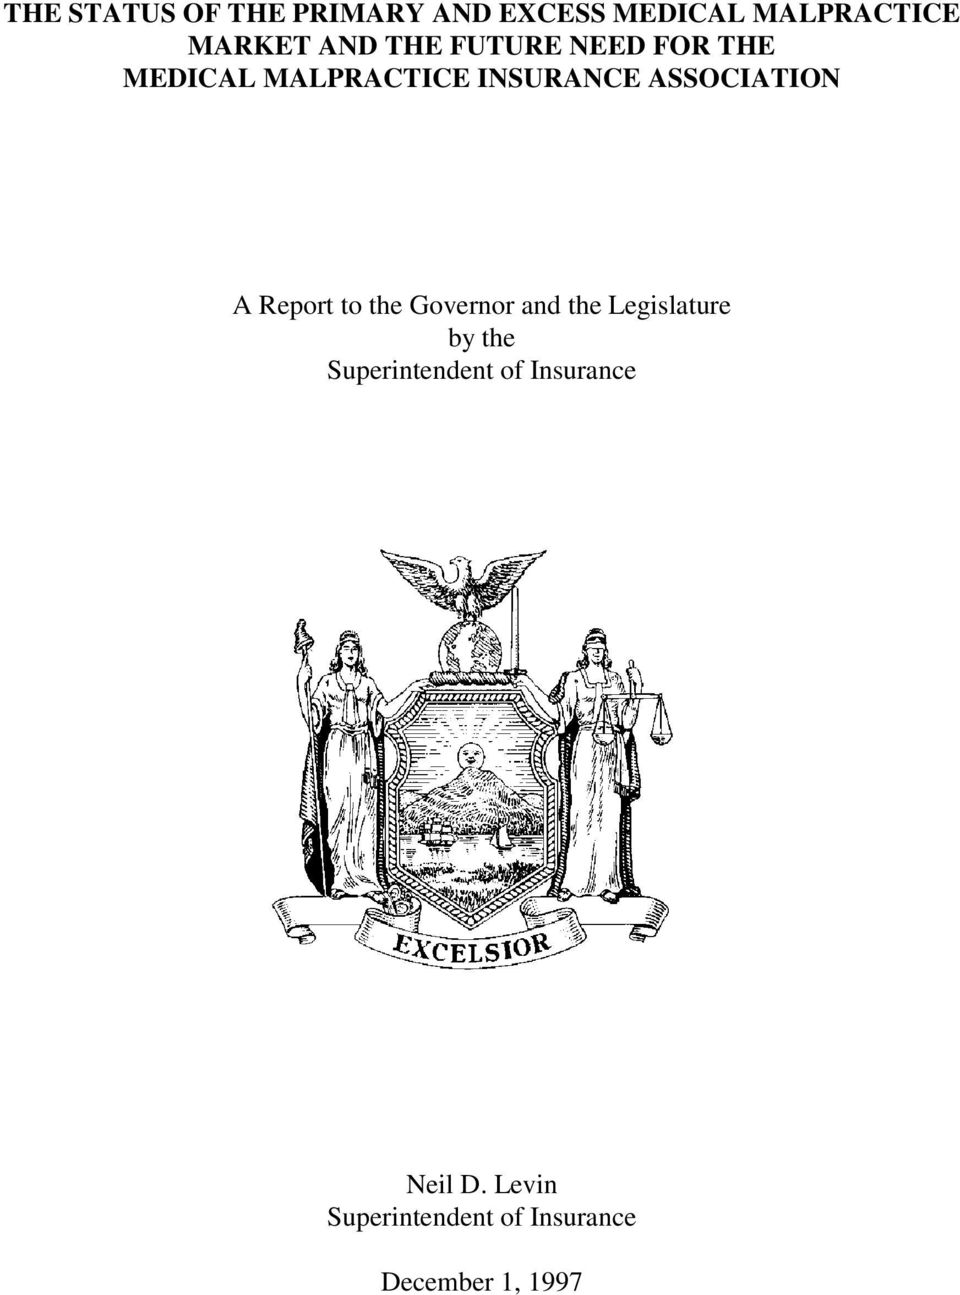 Report to the Governor and the Legislature by the Superintendent of